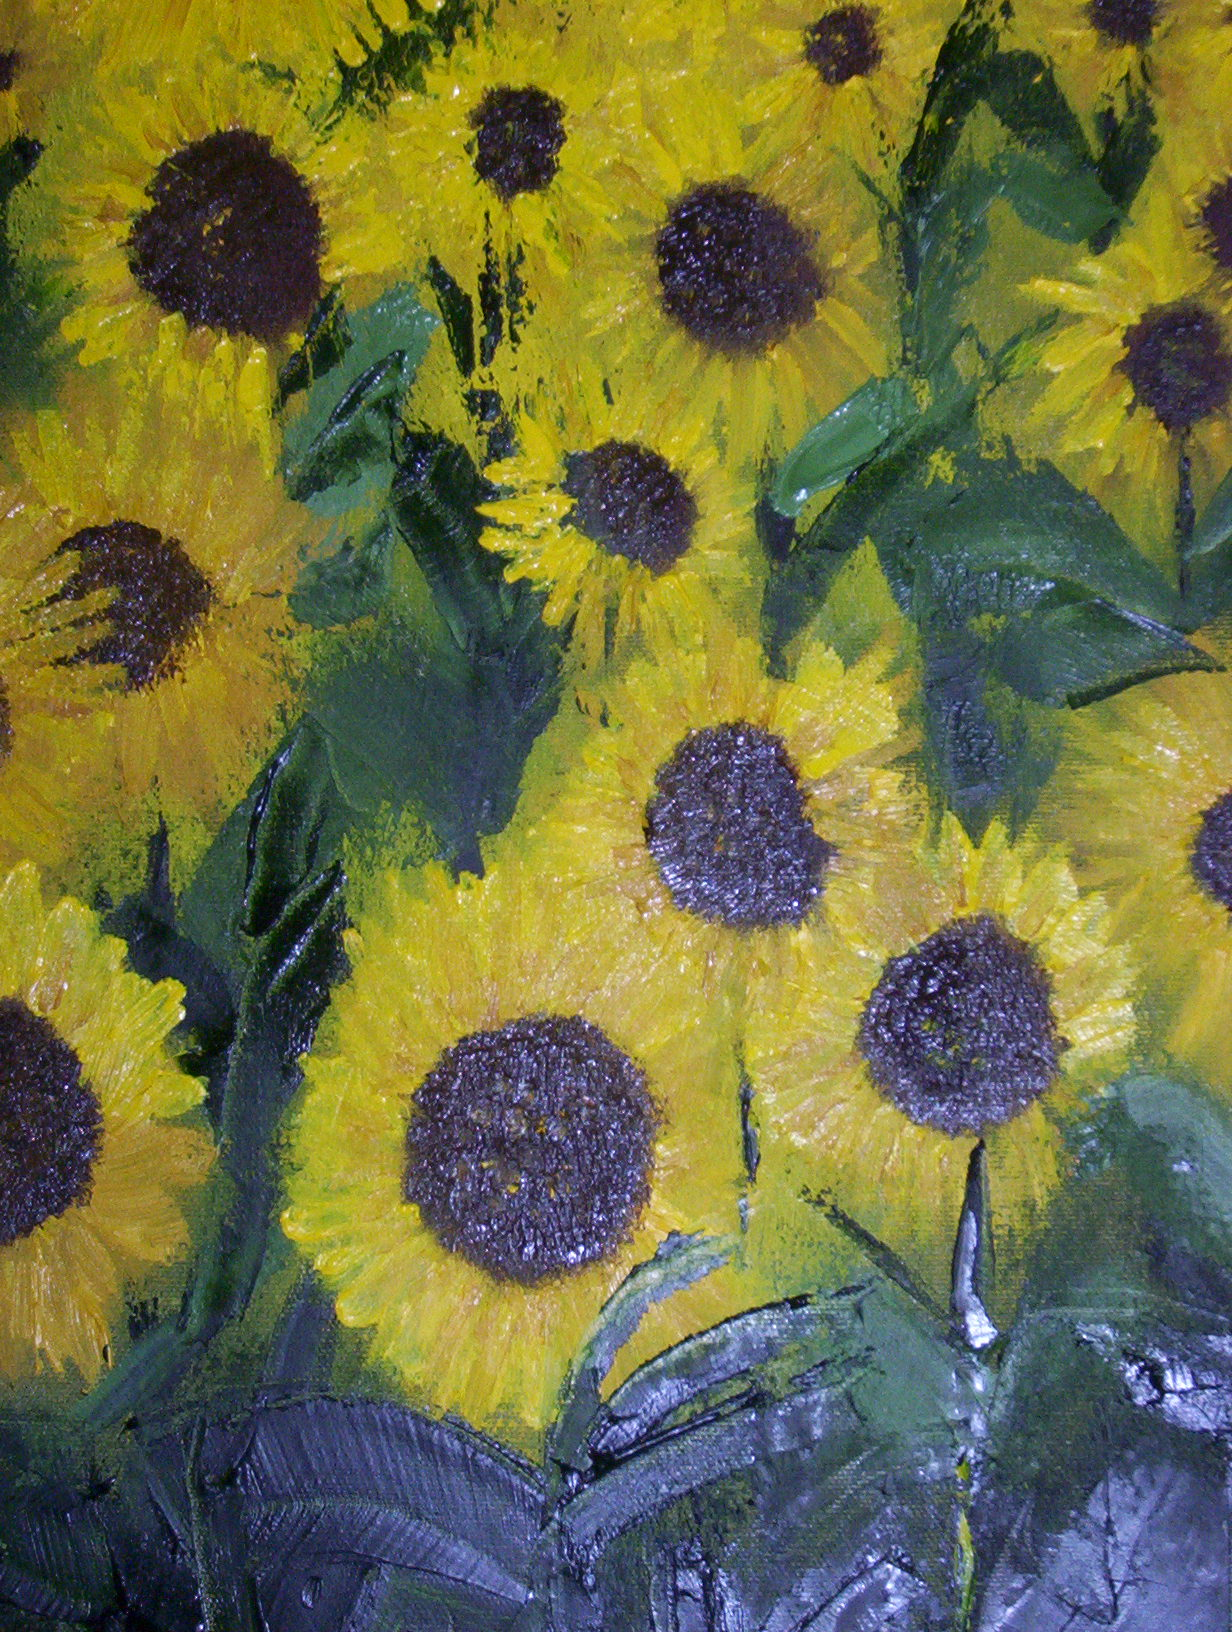 Sunflowers - Oil on Canvas - 16x20""